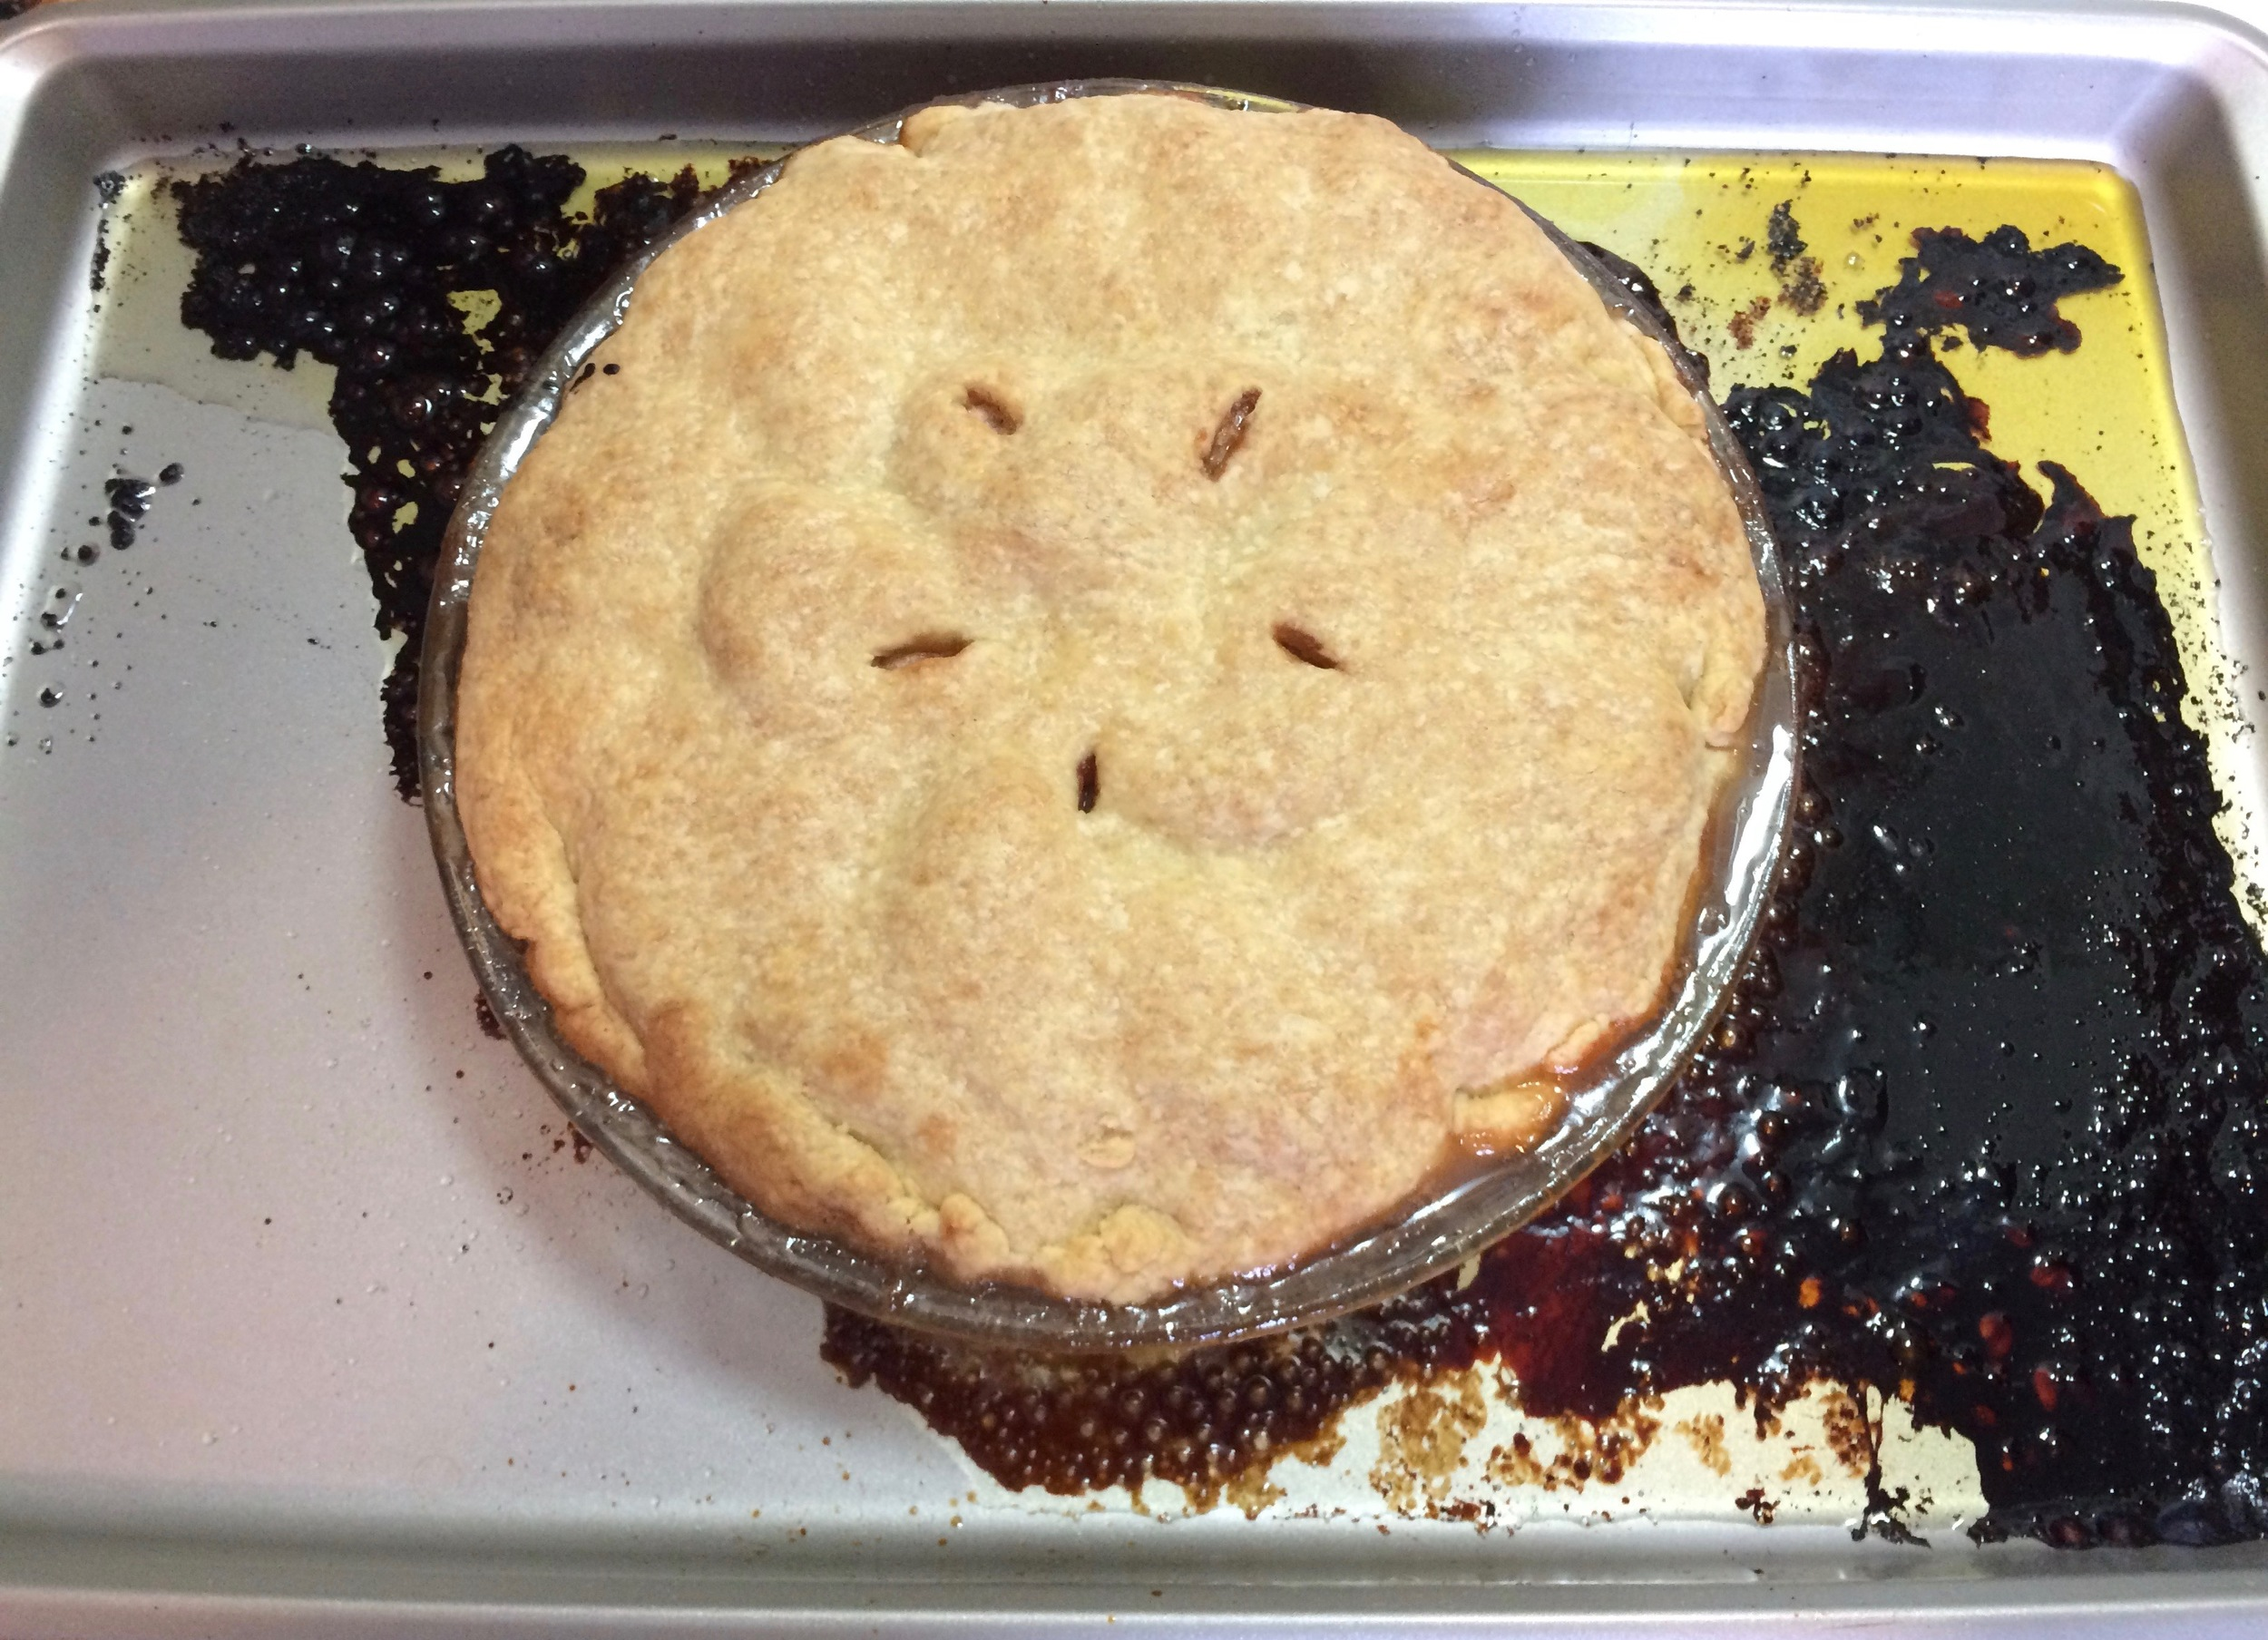 After removing tart from oven